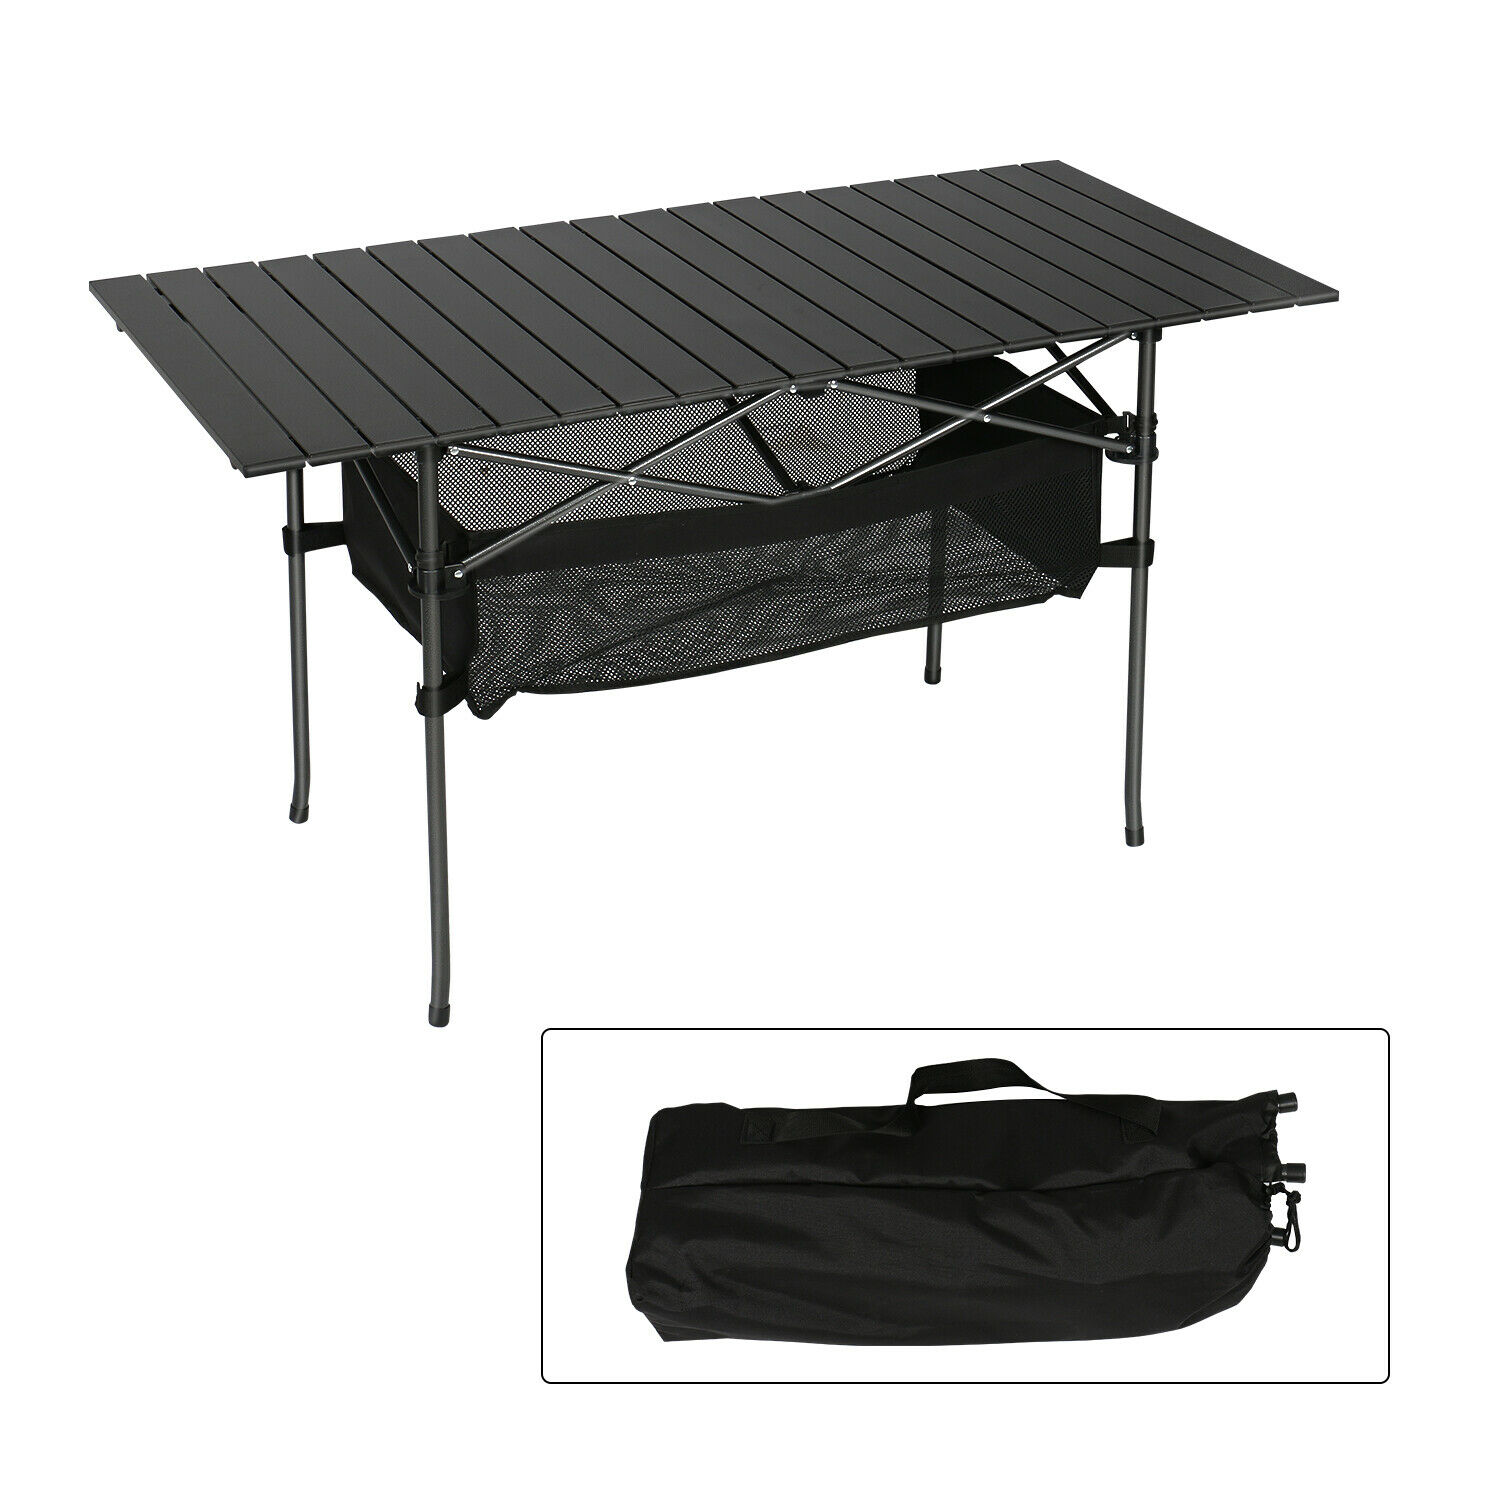 Portable Camping AluminumTable Inch Folding Aluminum Roll Up Backpacking Outdoor